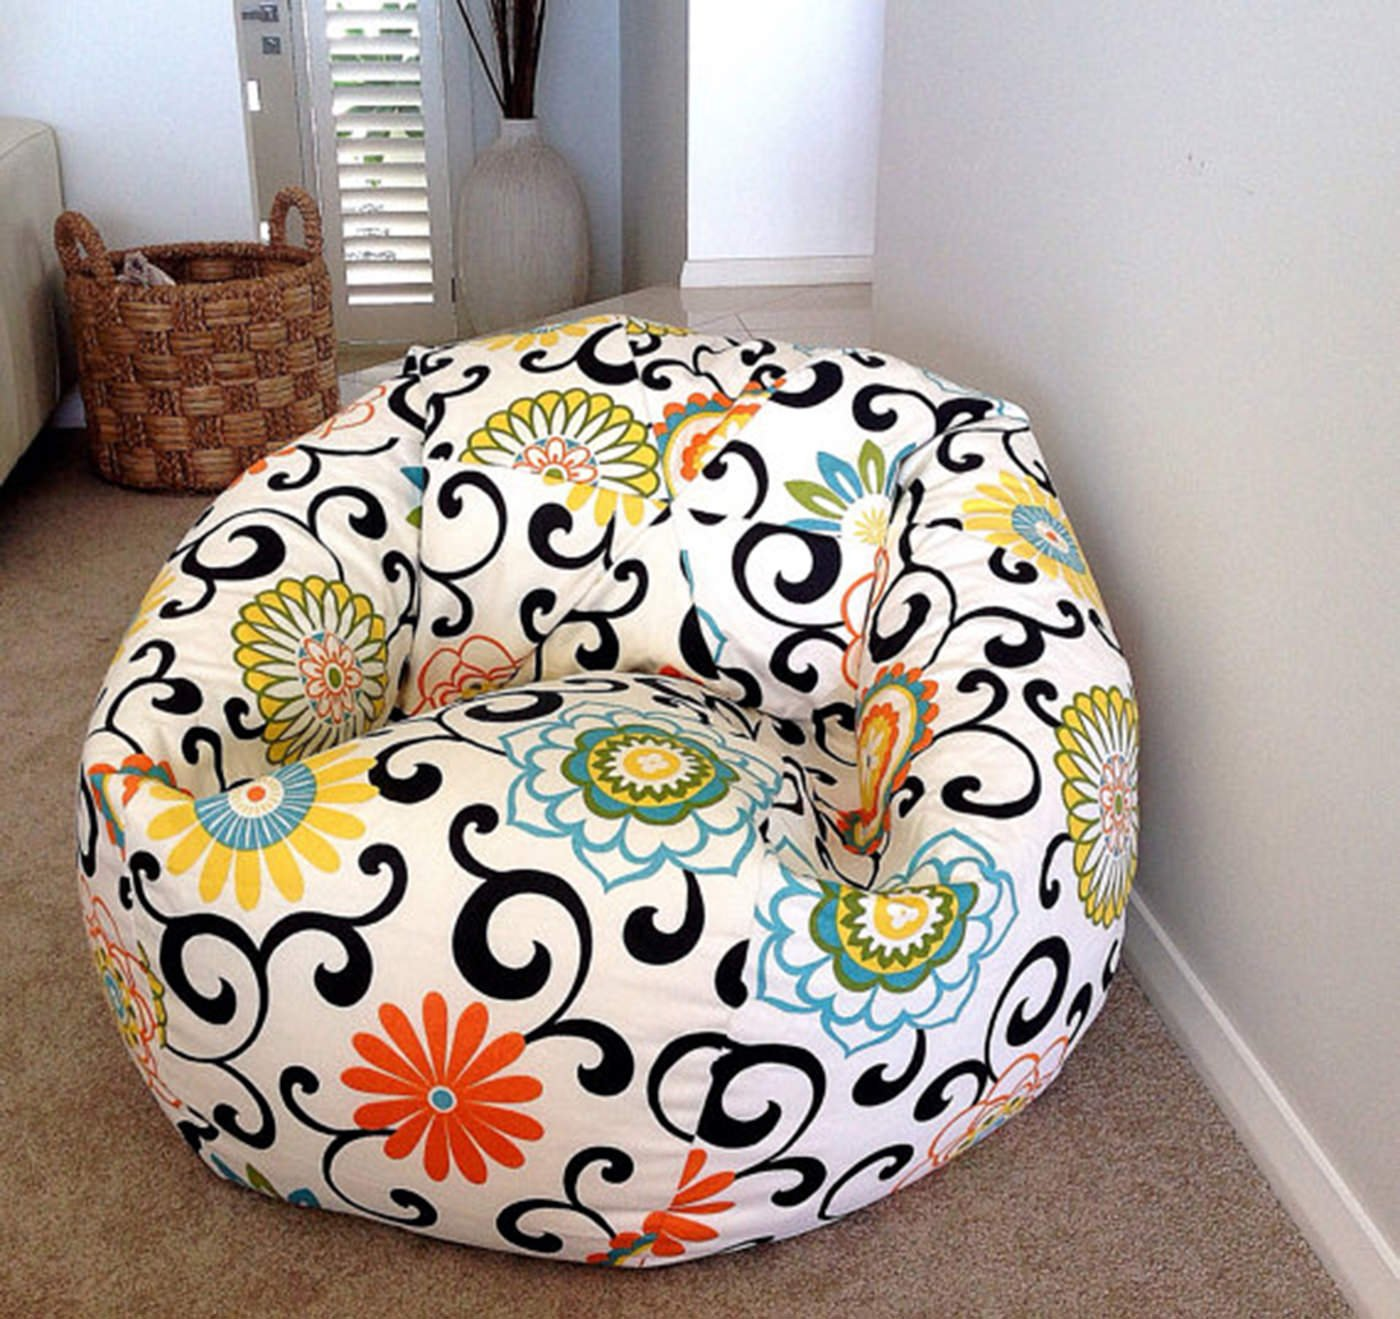 Fine Aart Store Mosaic Xxxl Bean Bag With Beans Filled Blue Color Bralicious Painted Fabric Chair Ideas Braliciousco